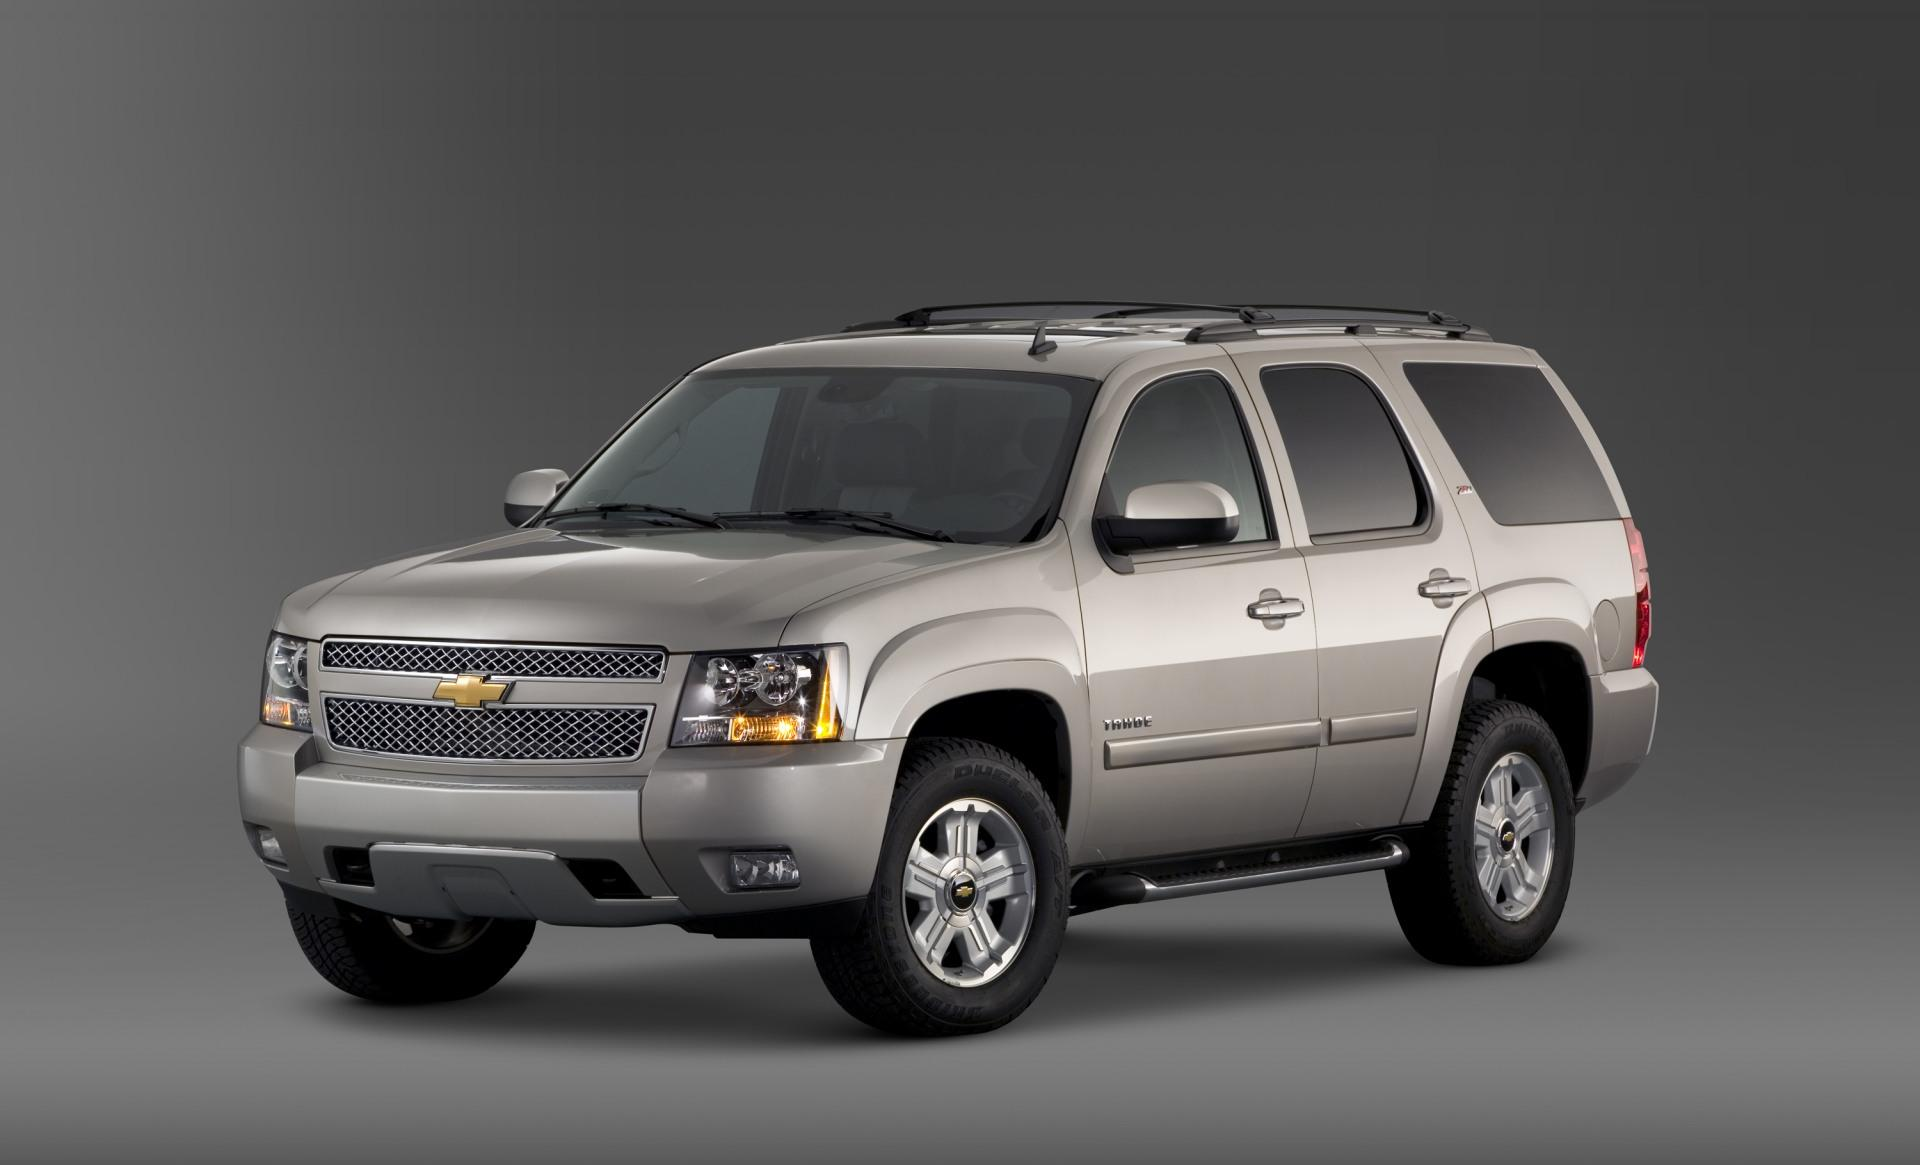 road gallery off news image view photo and tahoe suburban suvs gmc front yukon chevy chevrolet for variant